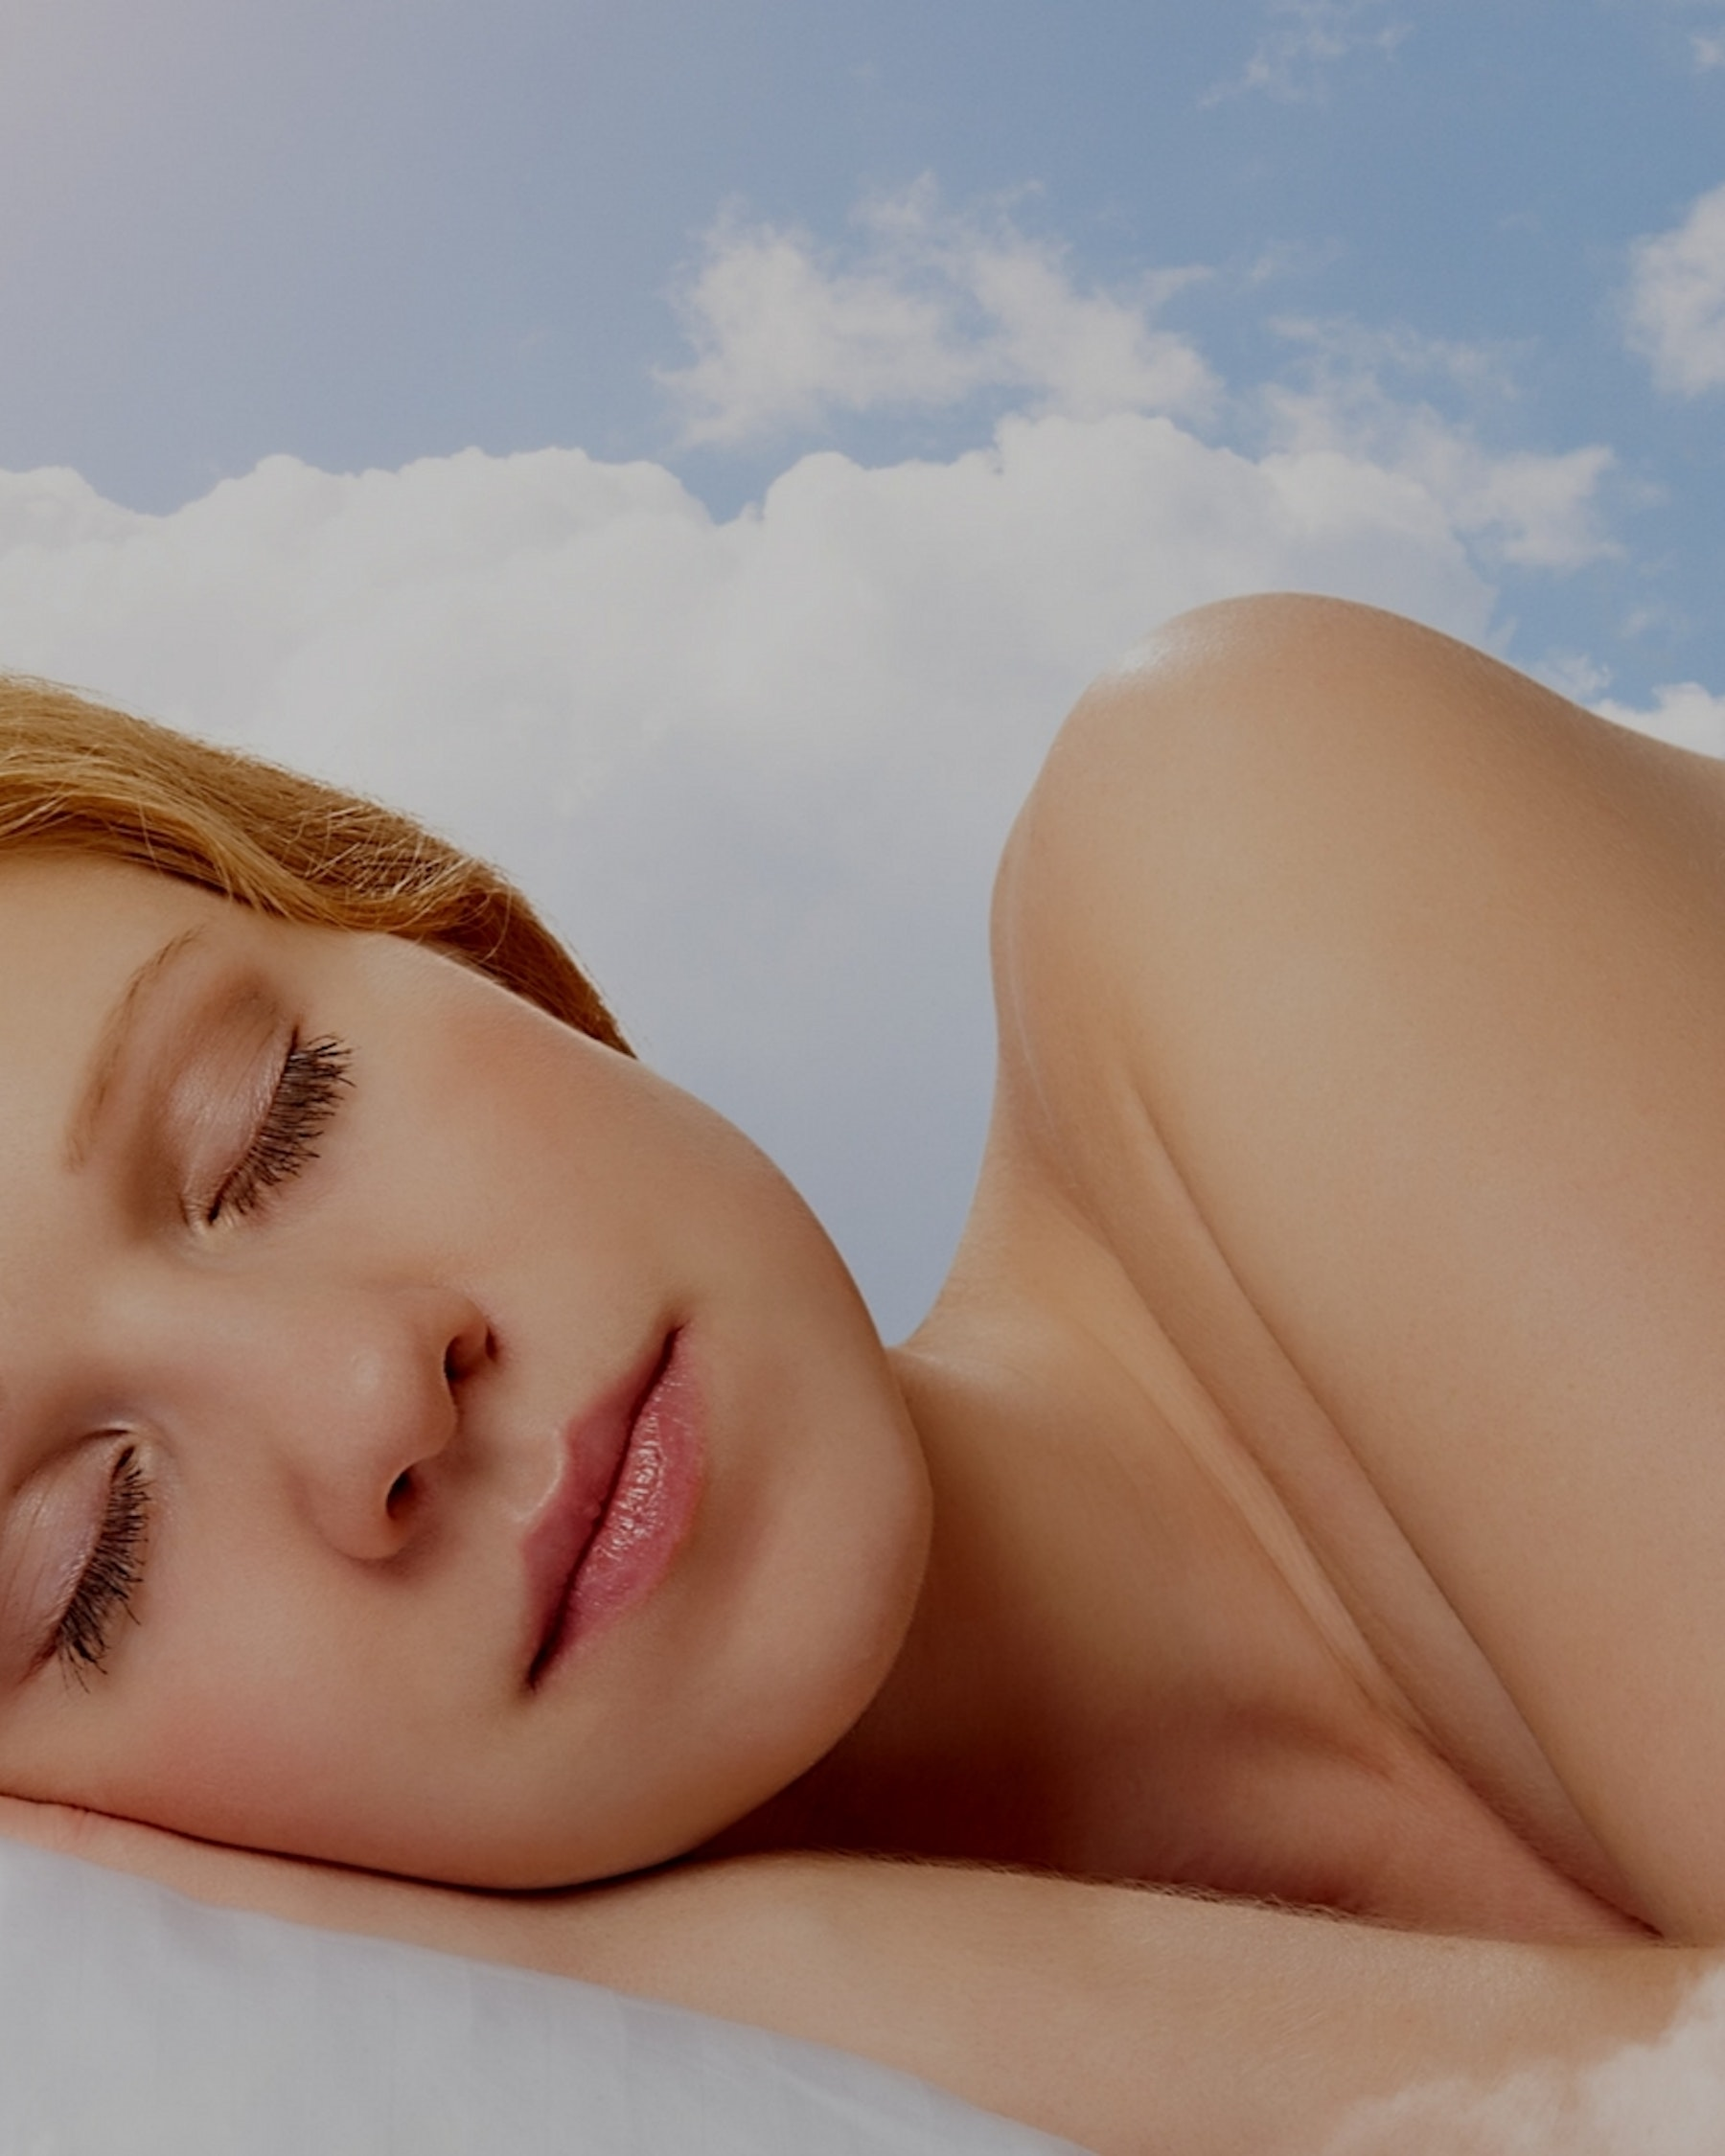 What Is Beauty Sleep? - What Are The Benefits?